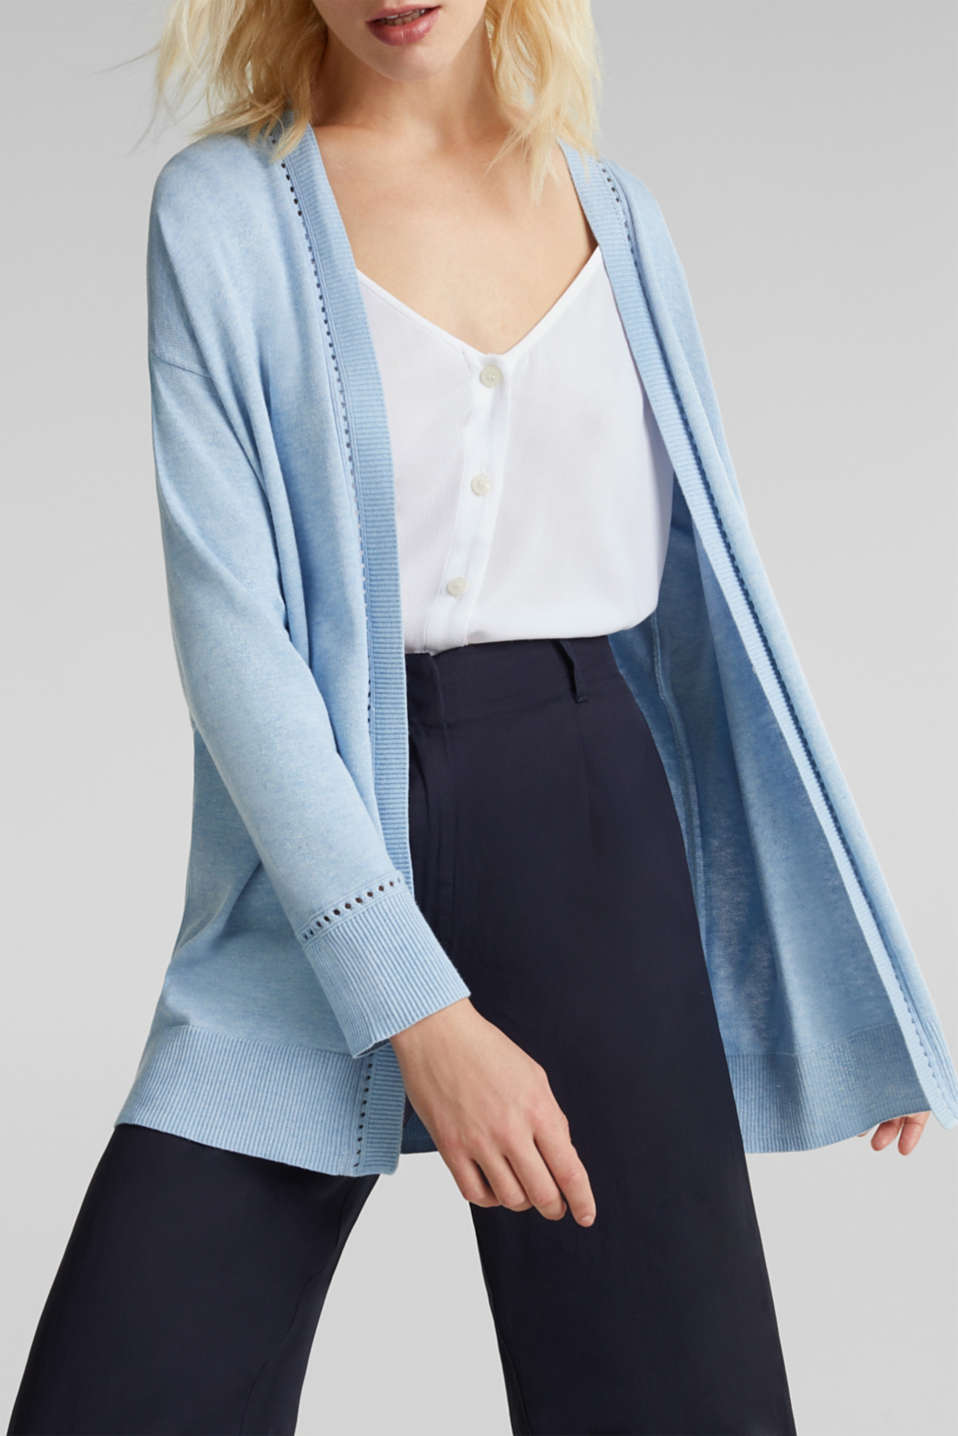 Cardigan with open-work pattern details, LIGHT BLUE, detail image number 2